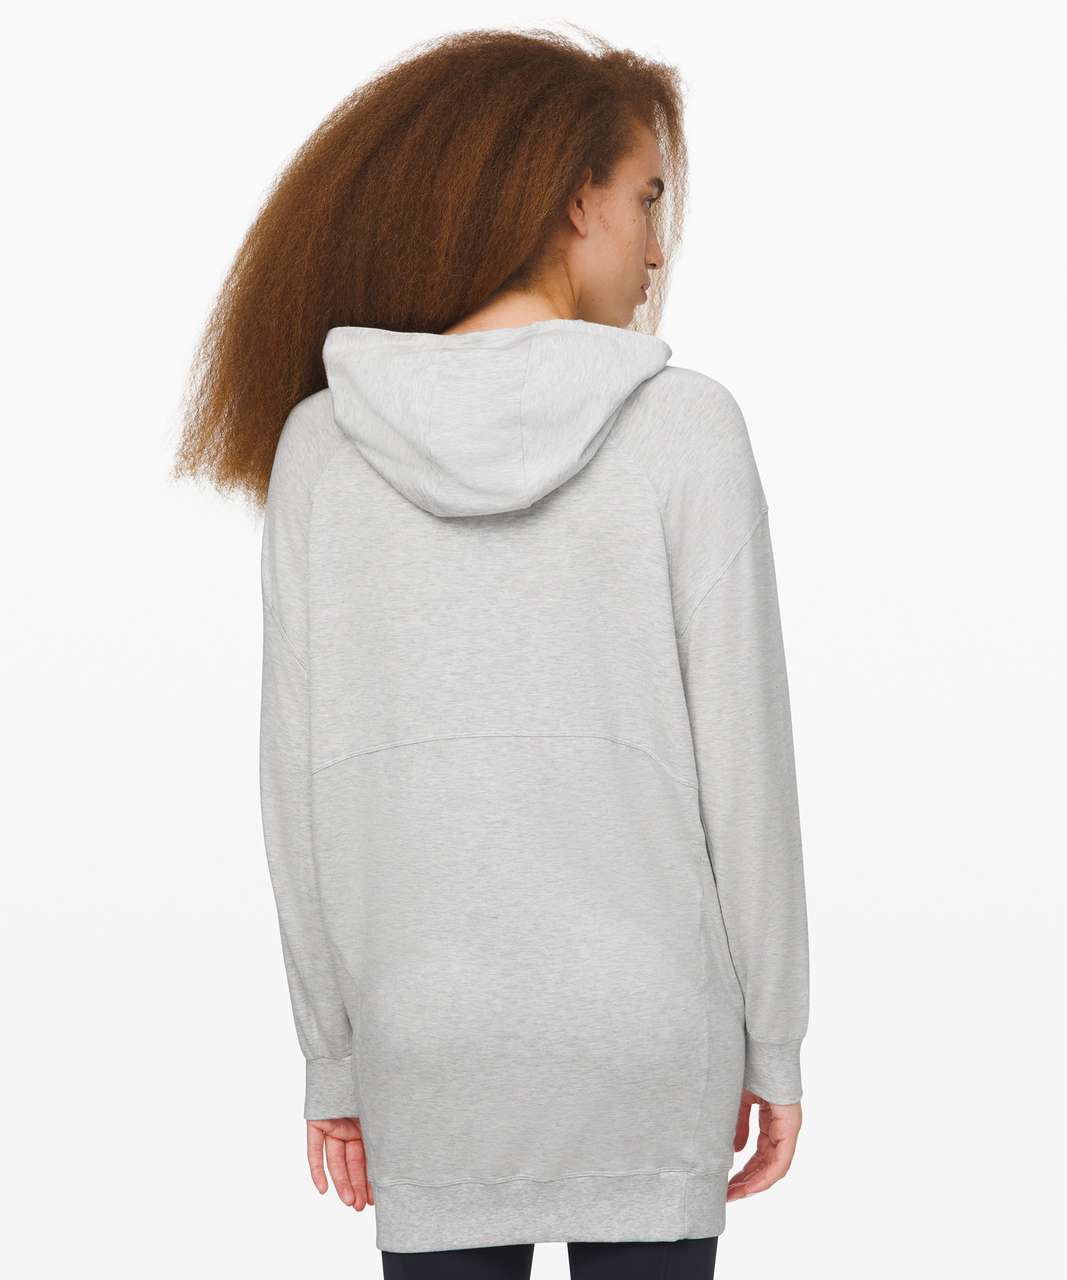 Lululemon Seek Stillness Hoodie - Heathered Core Ultra Light Grey